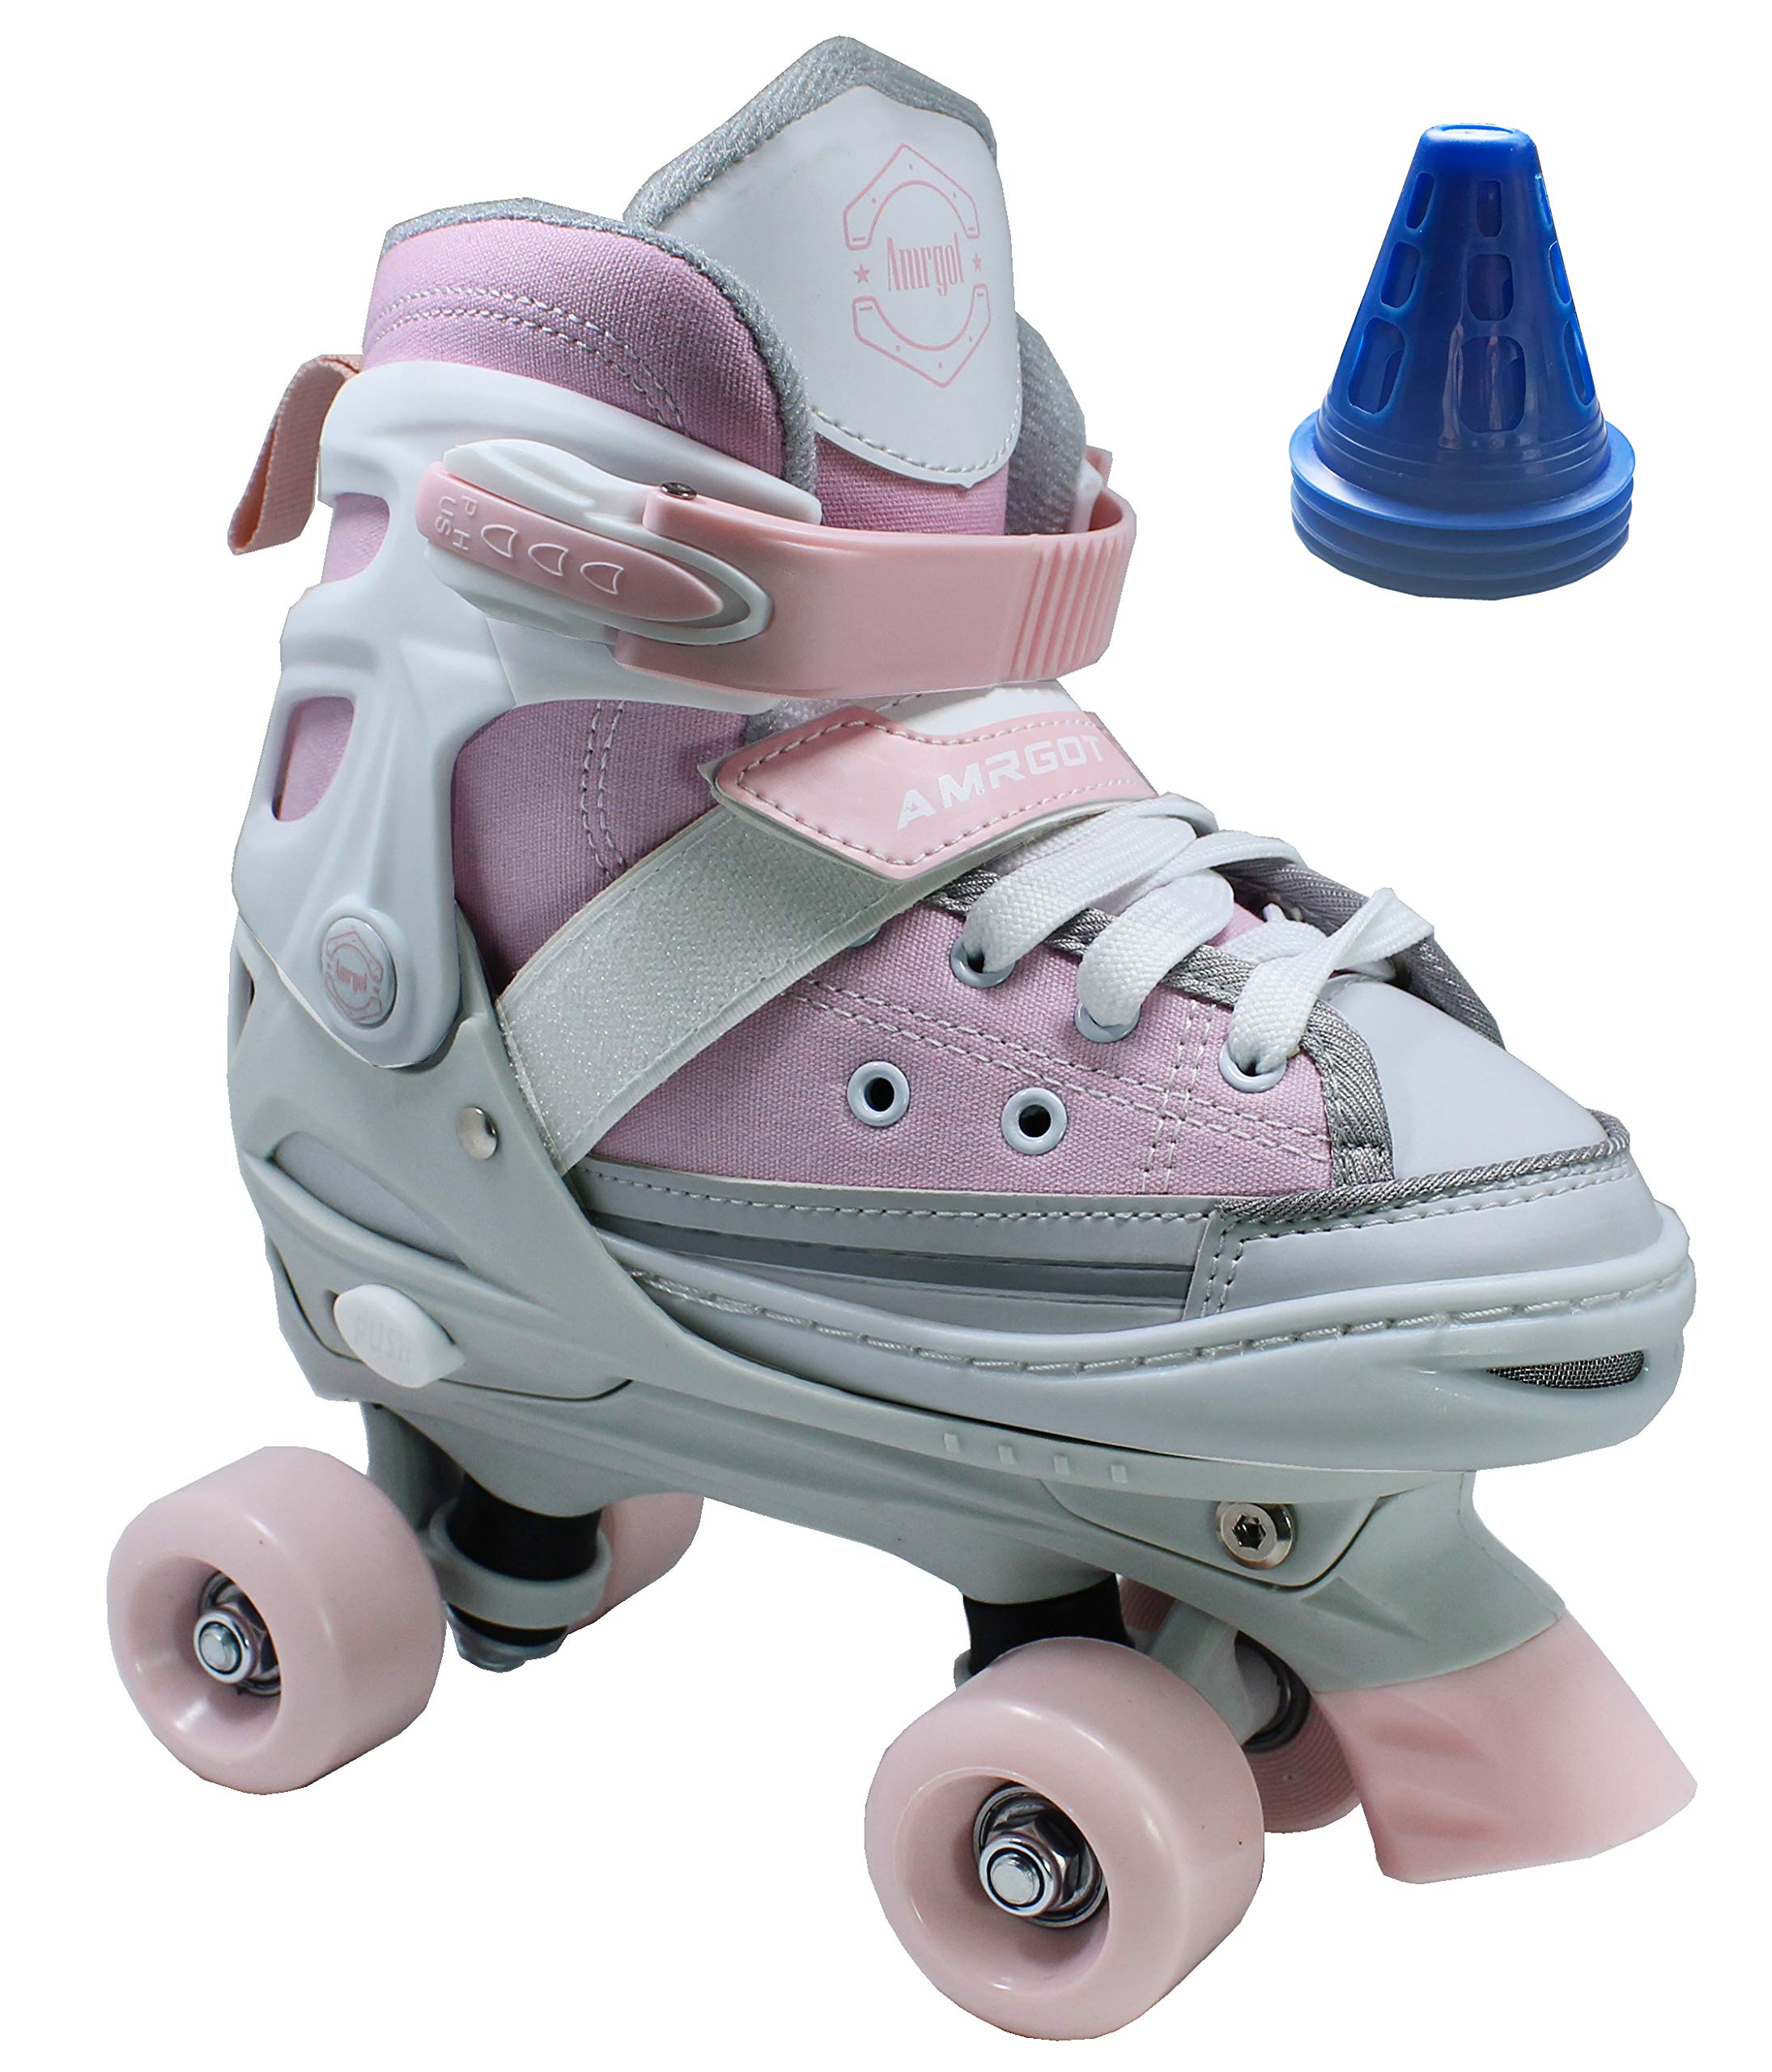 WiiSHAM Fun Roll Adjustable Canvas Roller Skates with Four Piles... (Pink and Grey, Small)